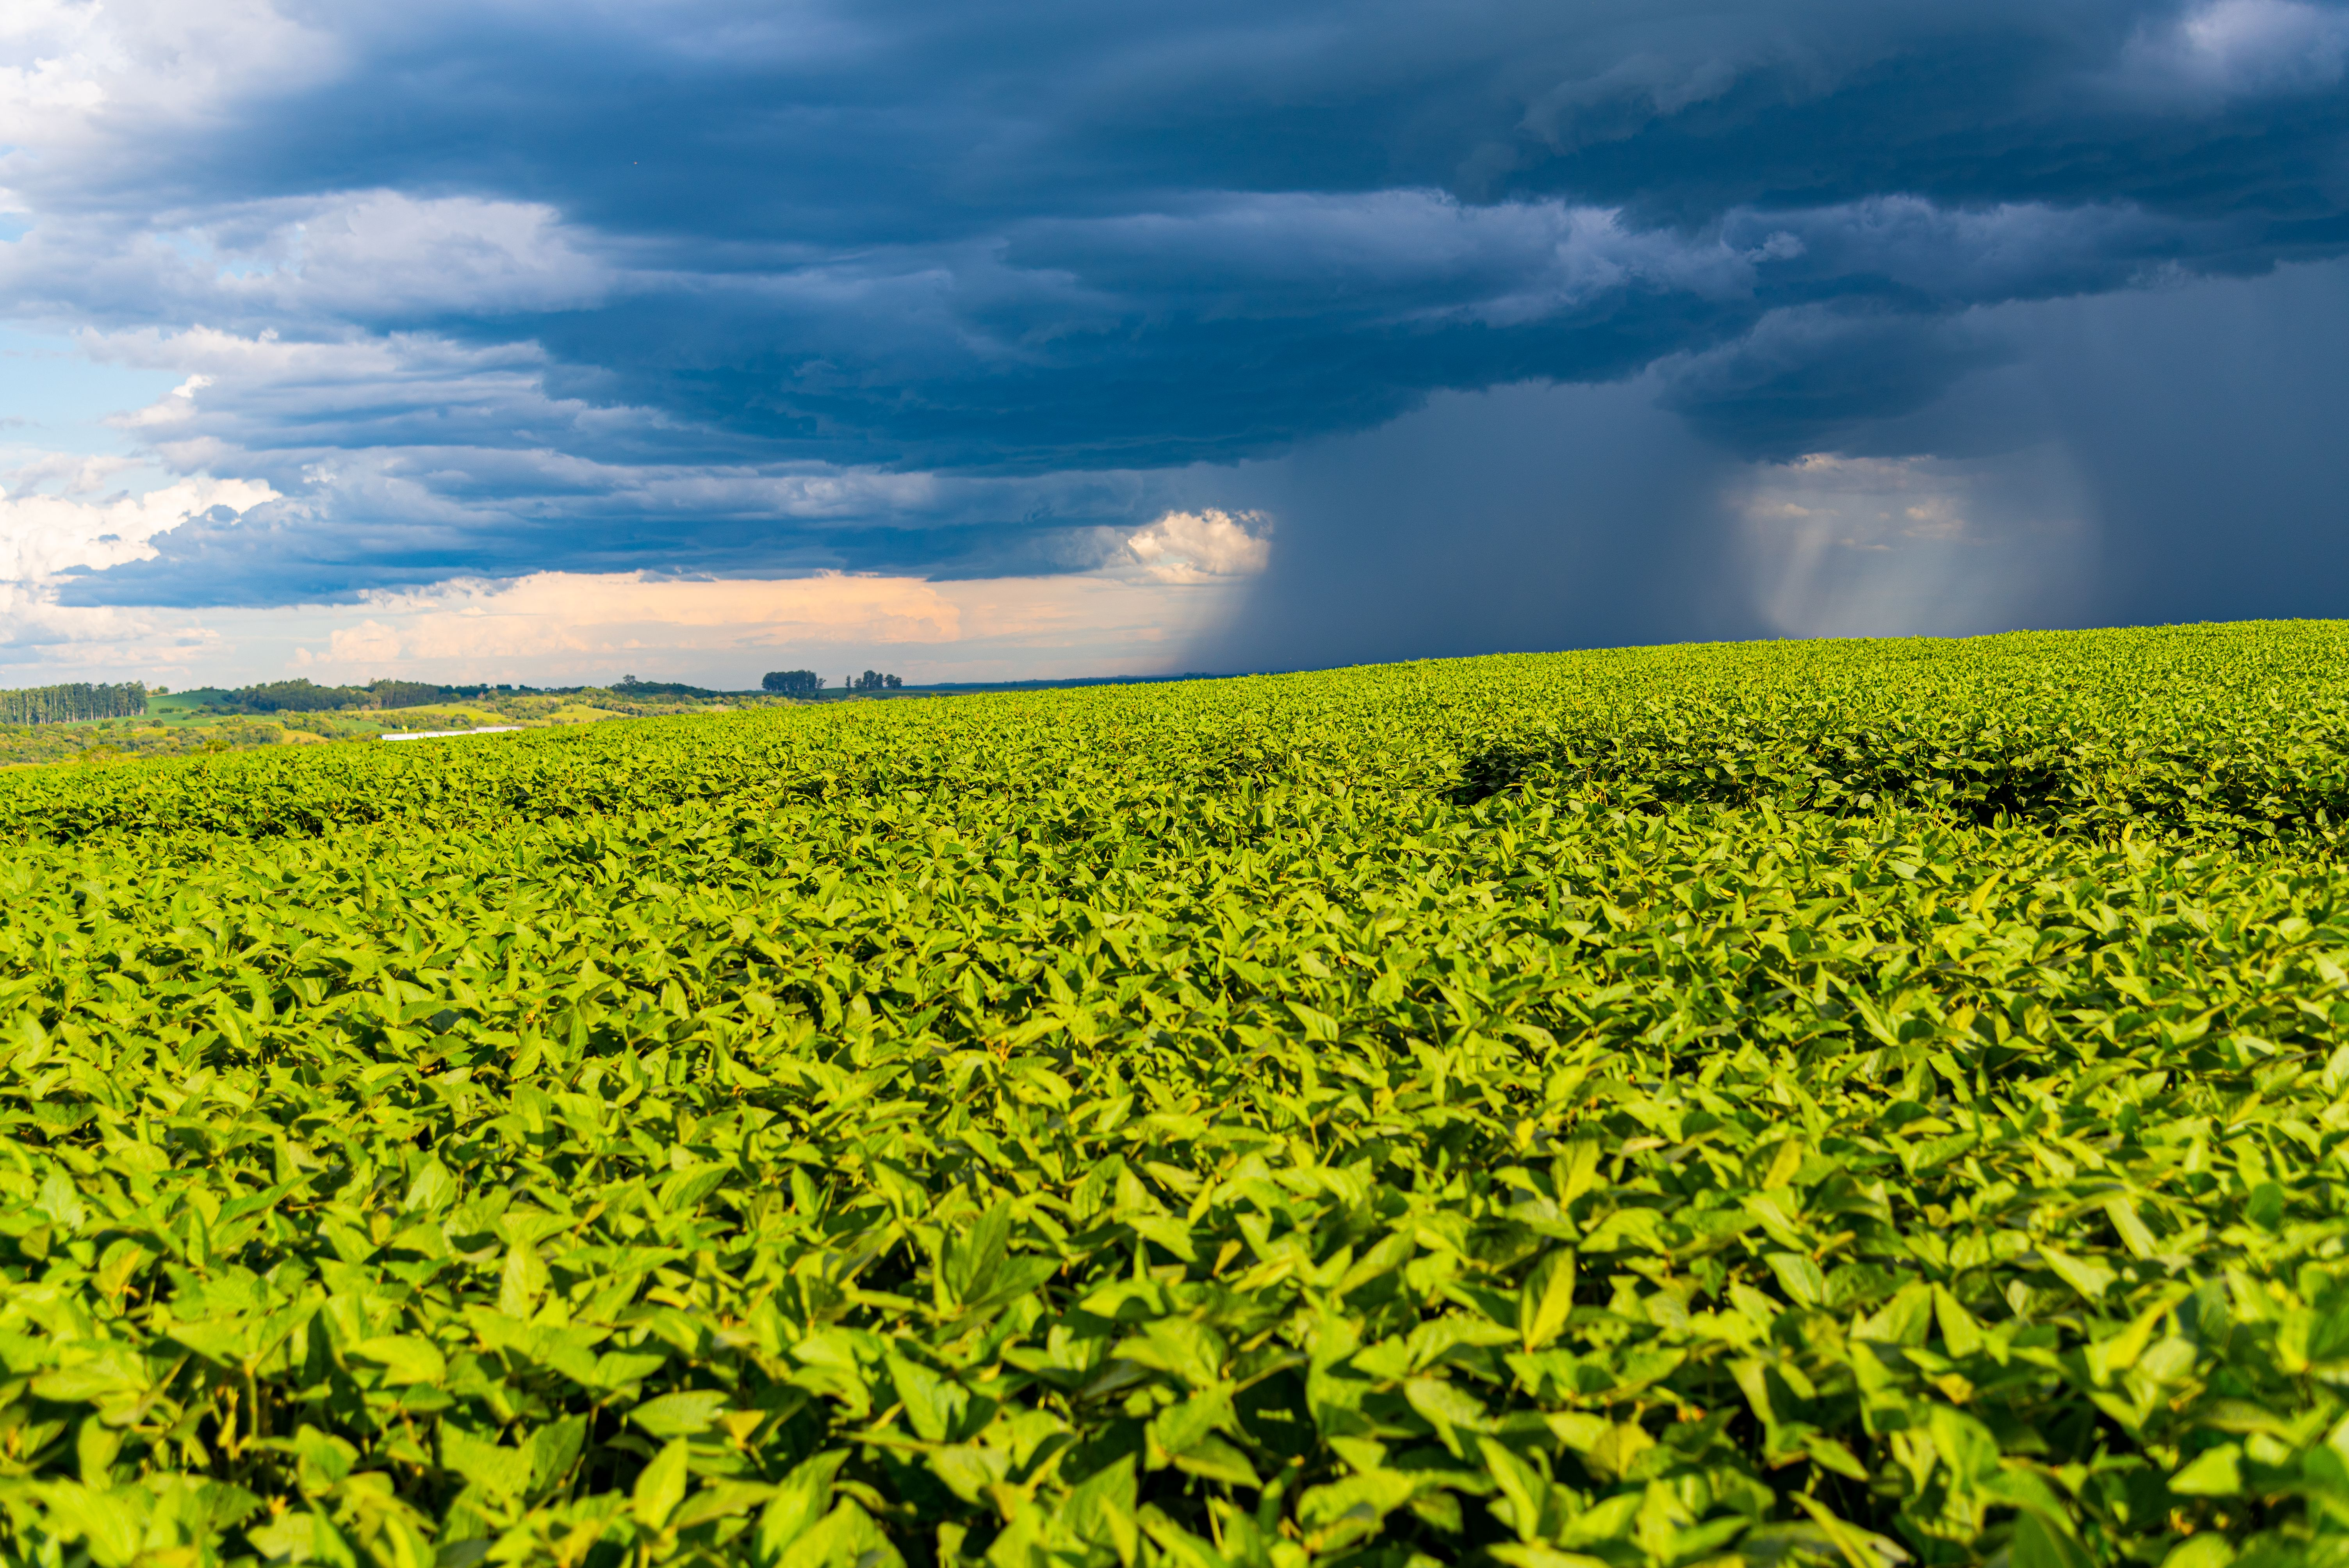 Storm over a soy plantation